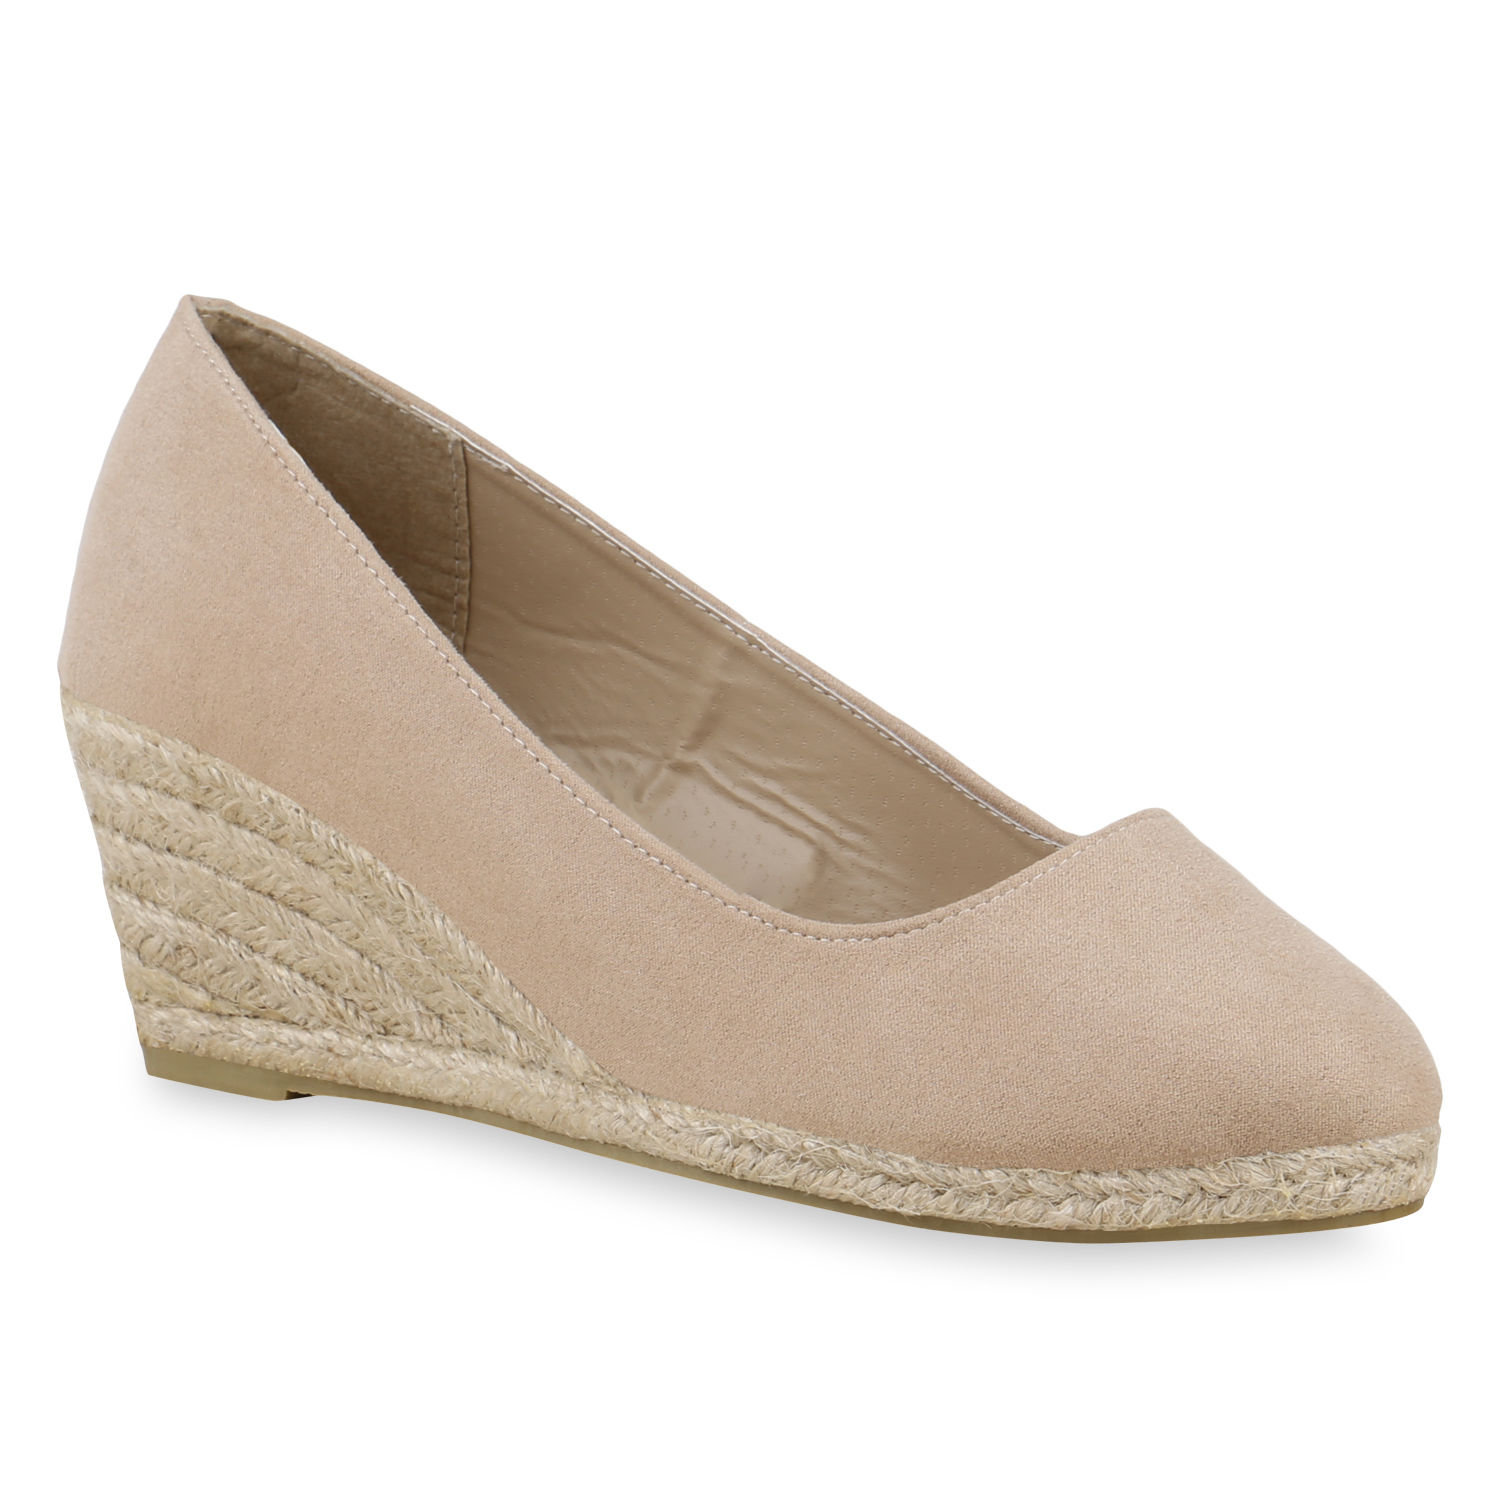 Damen Pumps Keilpumps - Beige